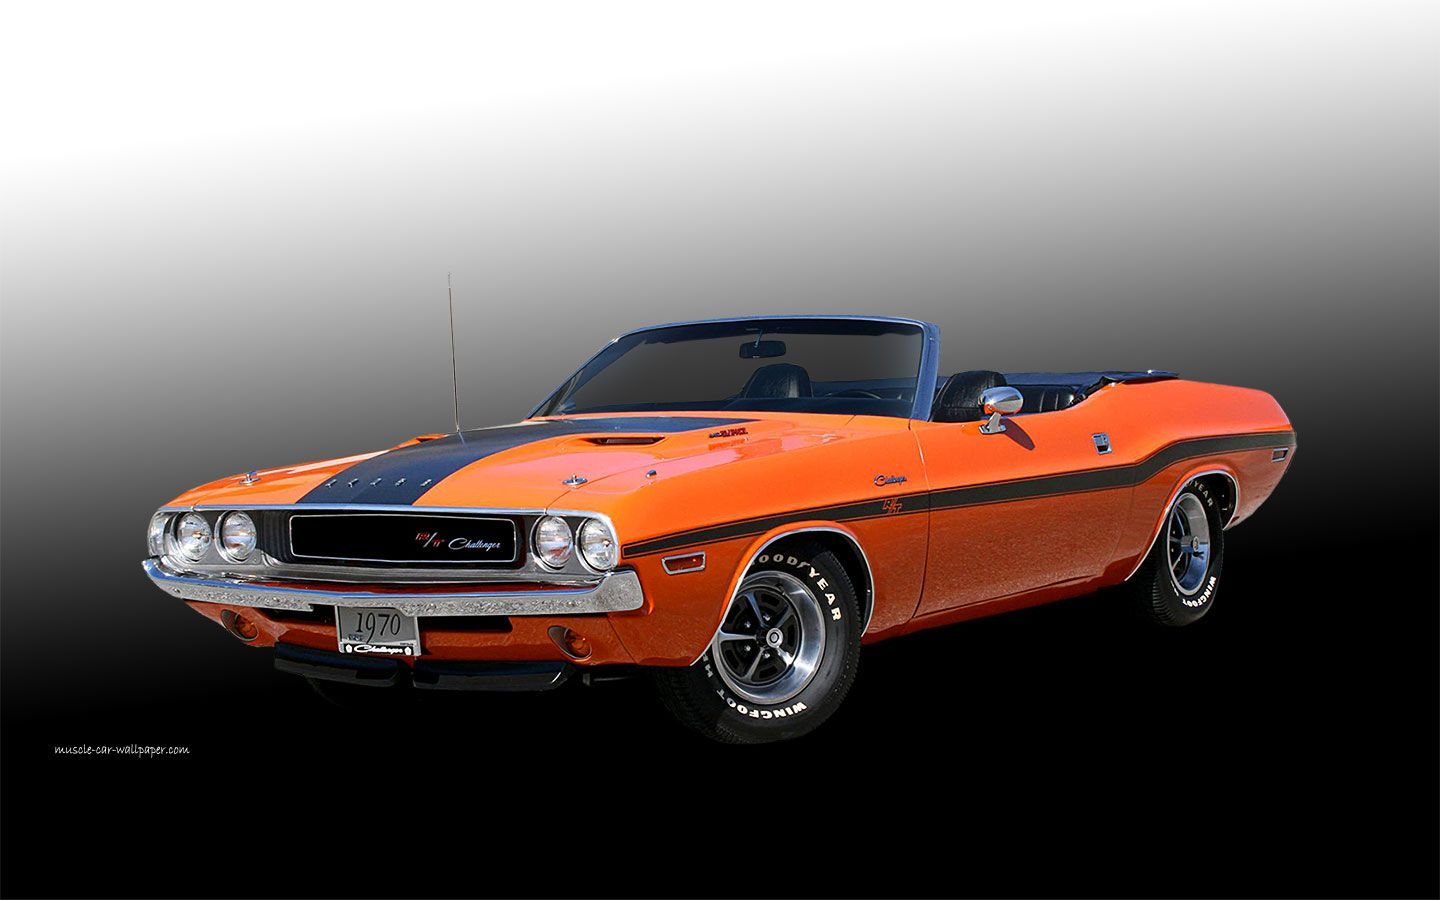 1970 Muscle Cars 1970 Left Side View 1440 03 Trivia Colors Available For The 1970 Mopar Mopar Muscle Old Muscle Cars